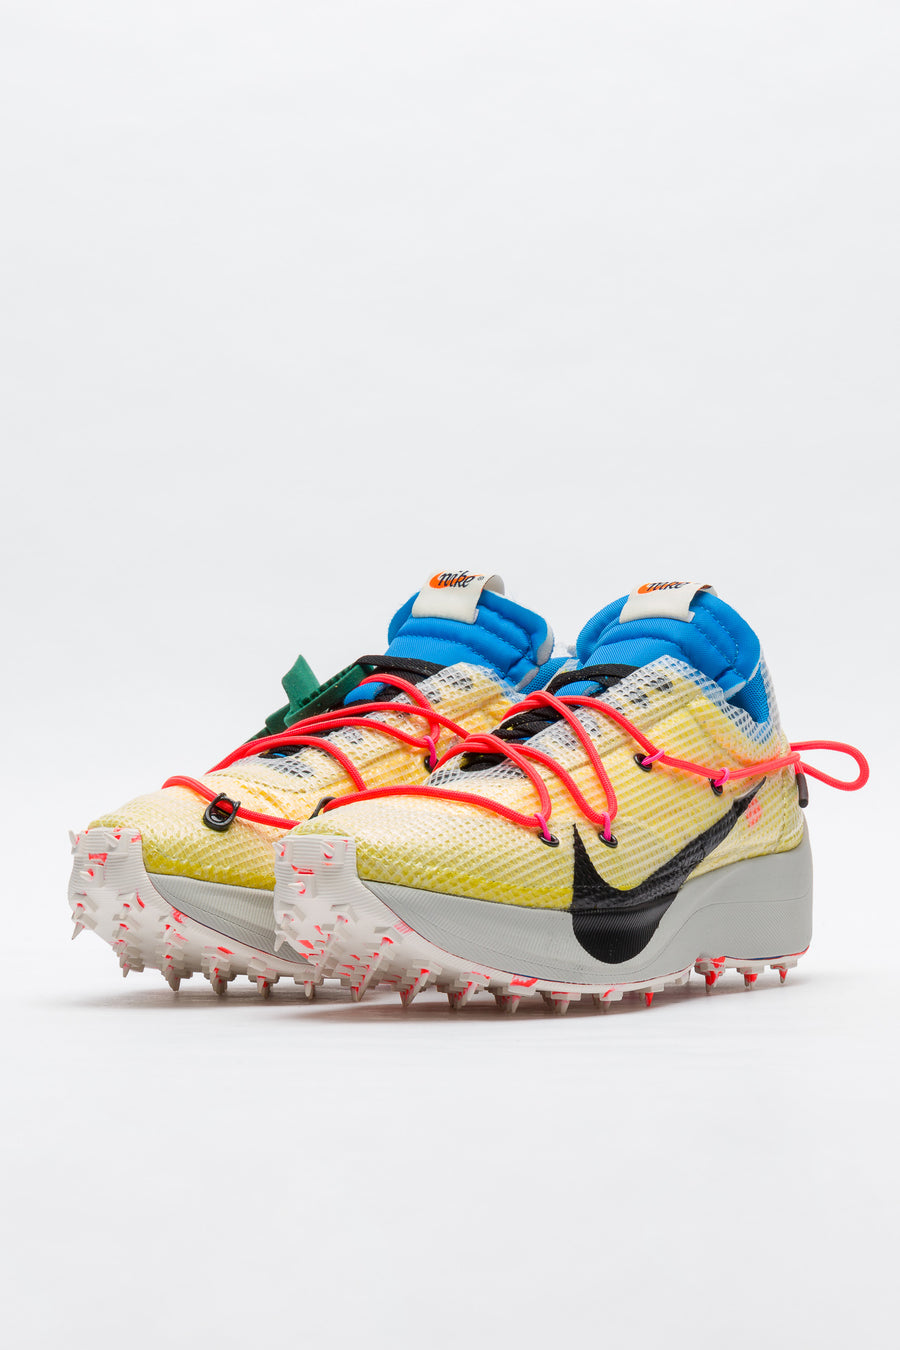 Off-White Vapor Street in Tour Yellow/Light Bone